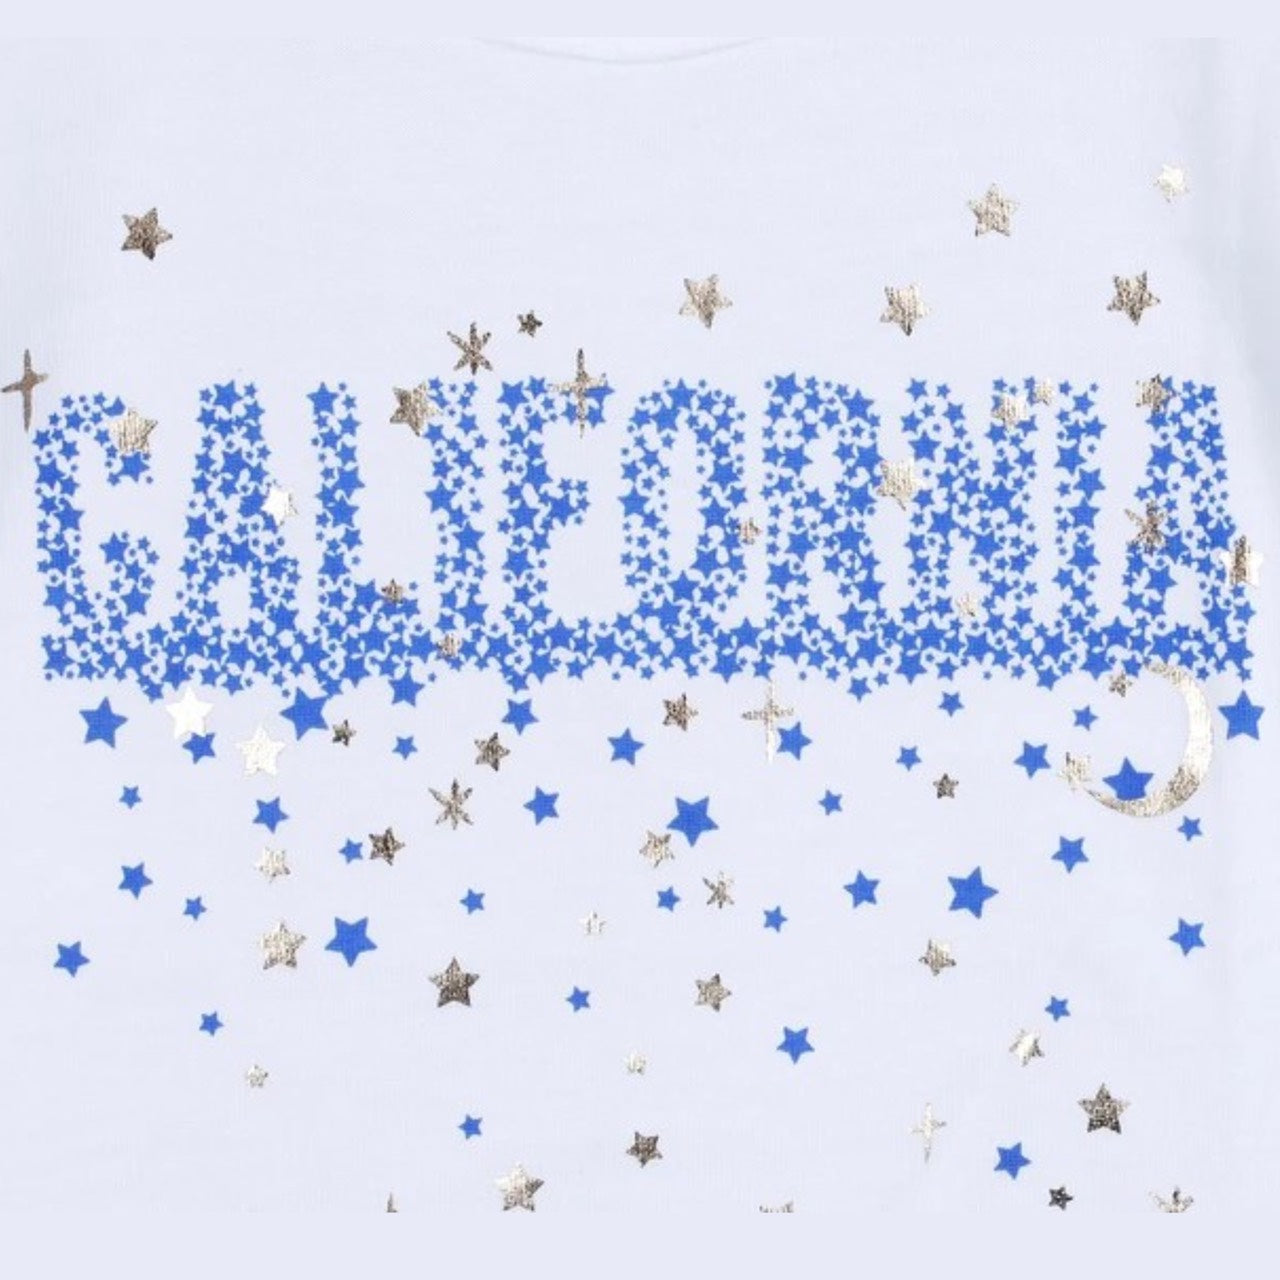 California Star & Moon Glitter T-shirt (Navy Blue/White)